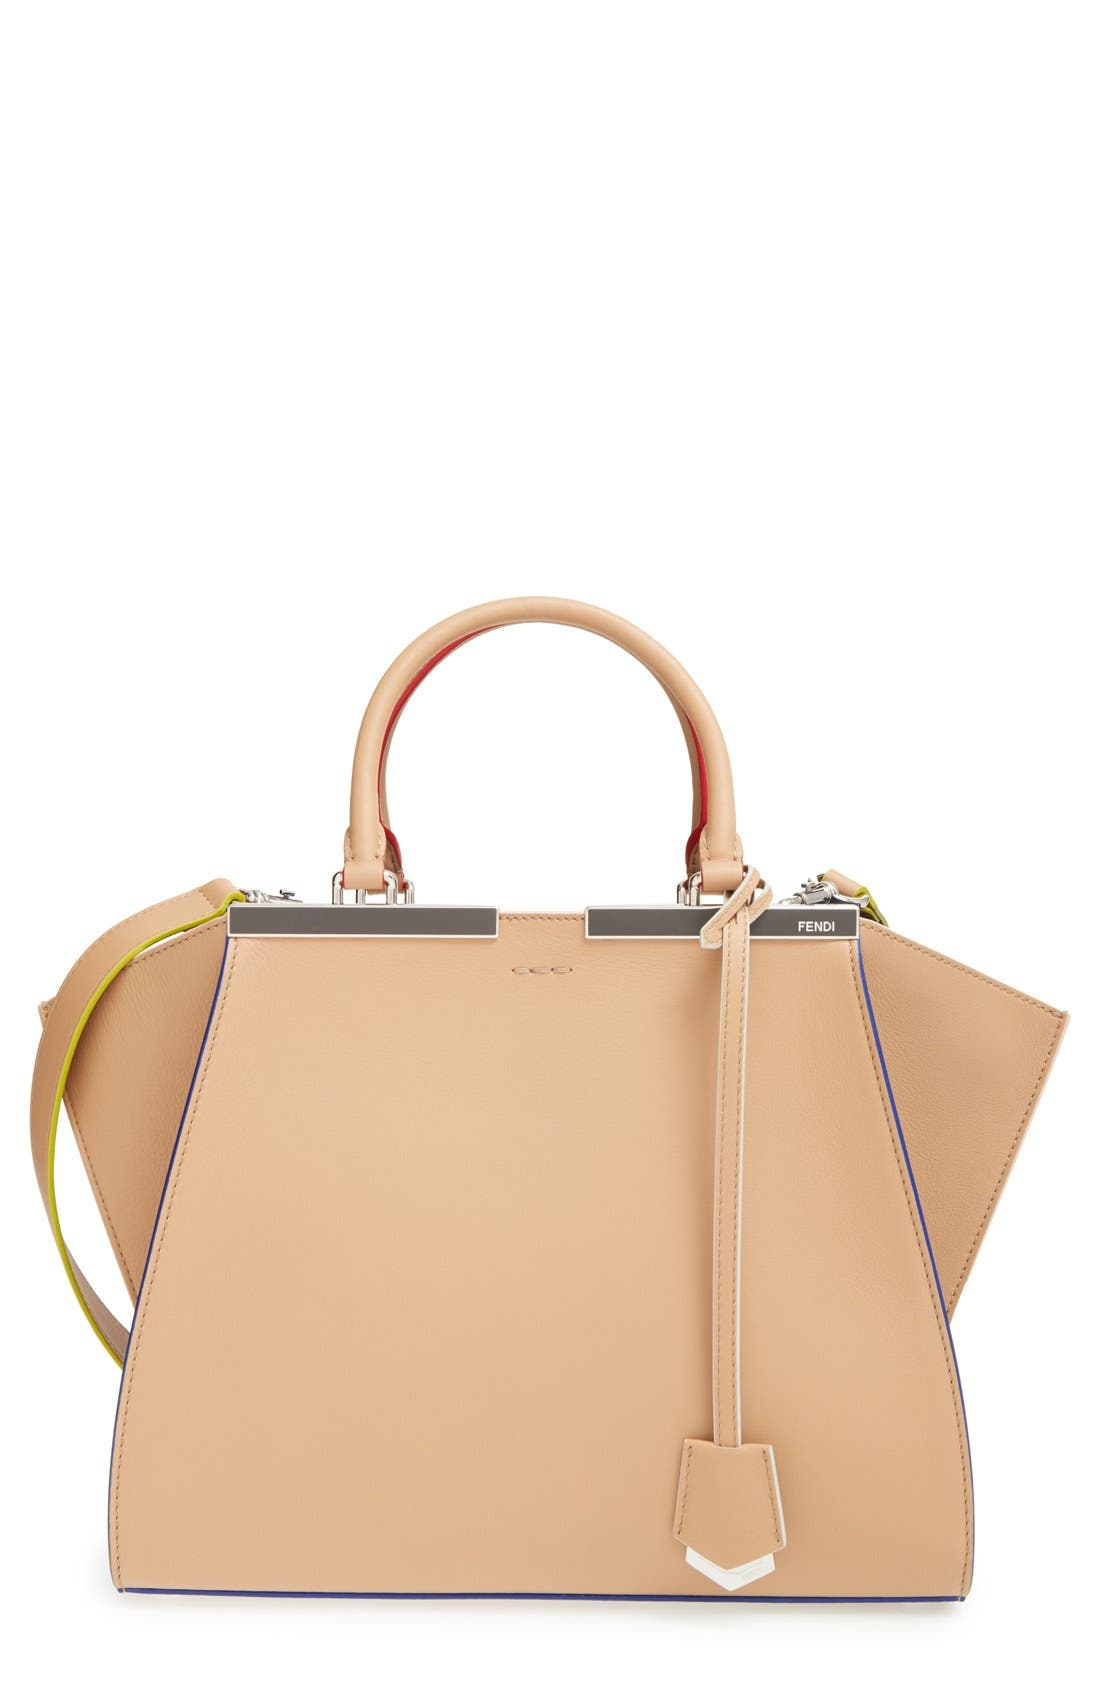 Alternate Image 1 Selected - Fendi '3Jours' Leather Shopper